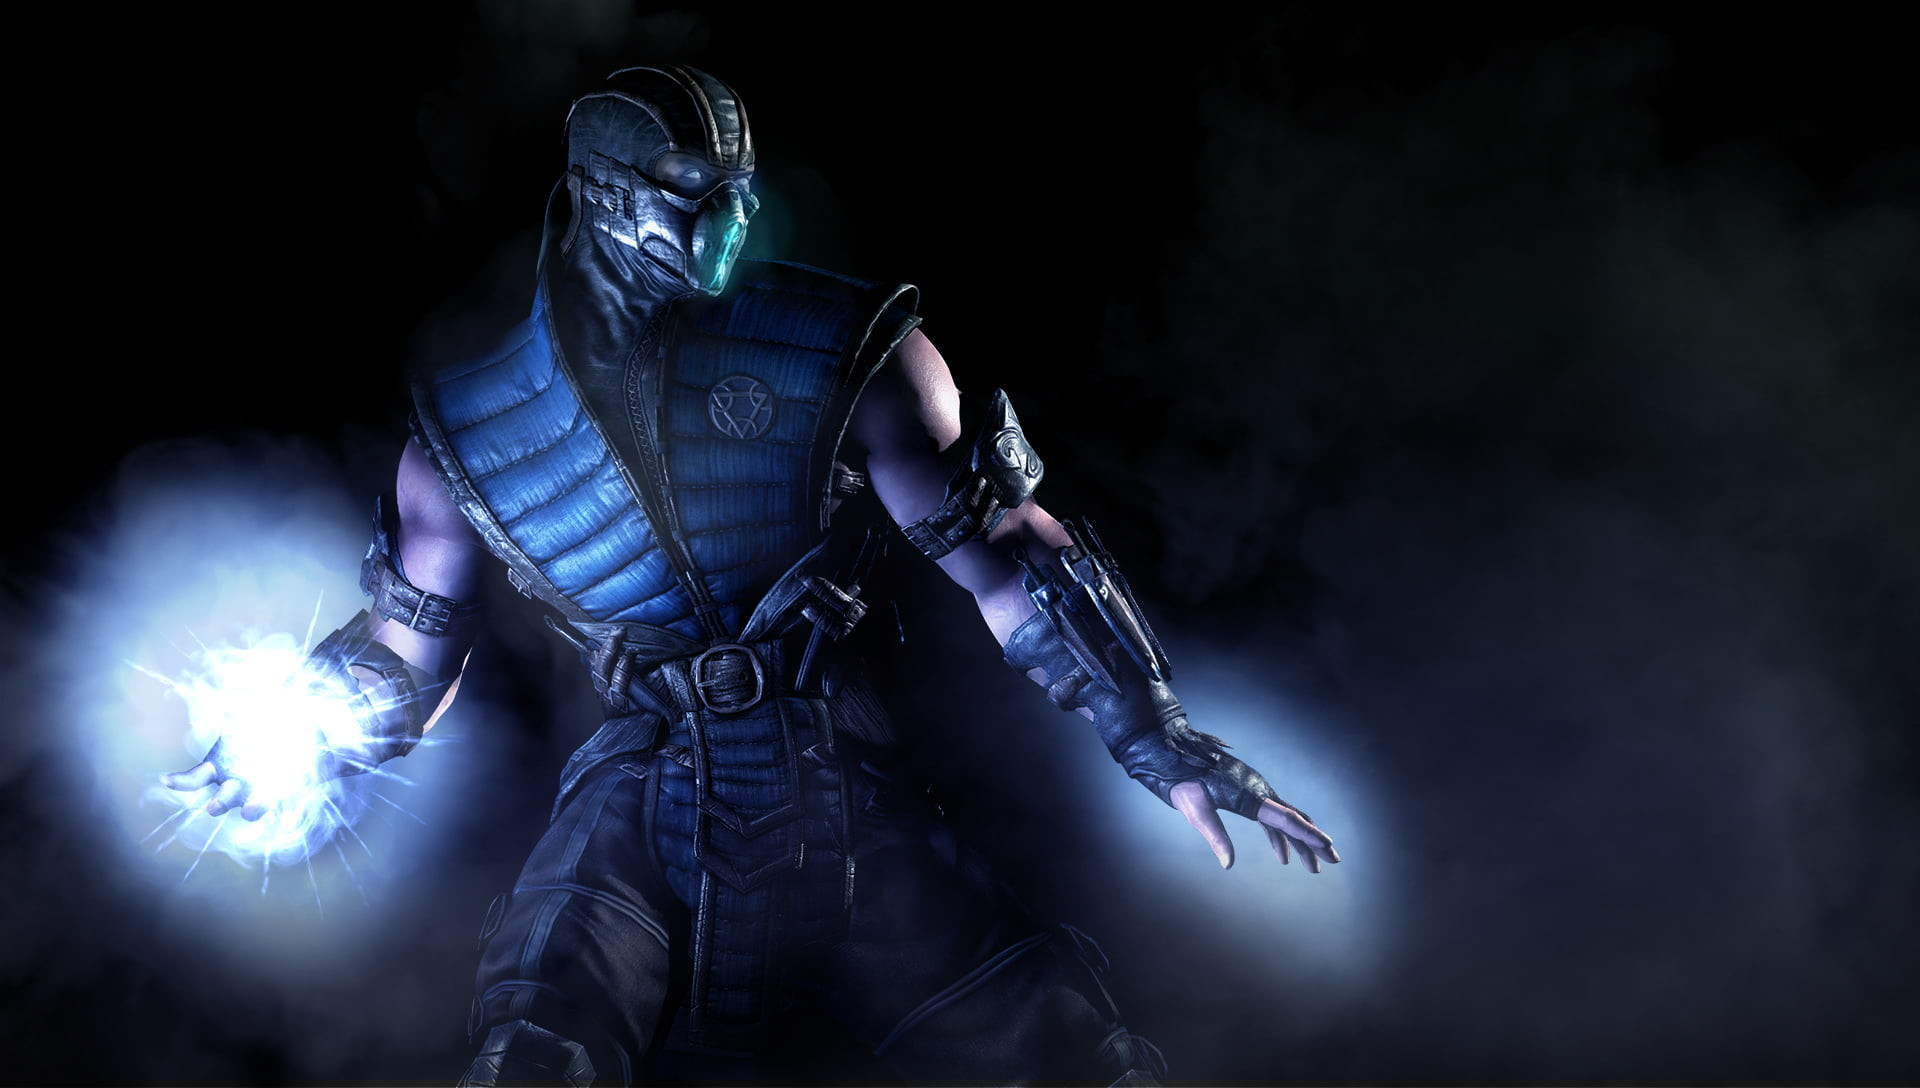 Mortal Kombat X Raiden Wallpapers 73 Background Pictures